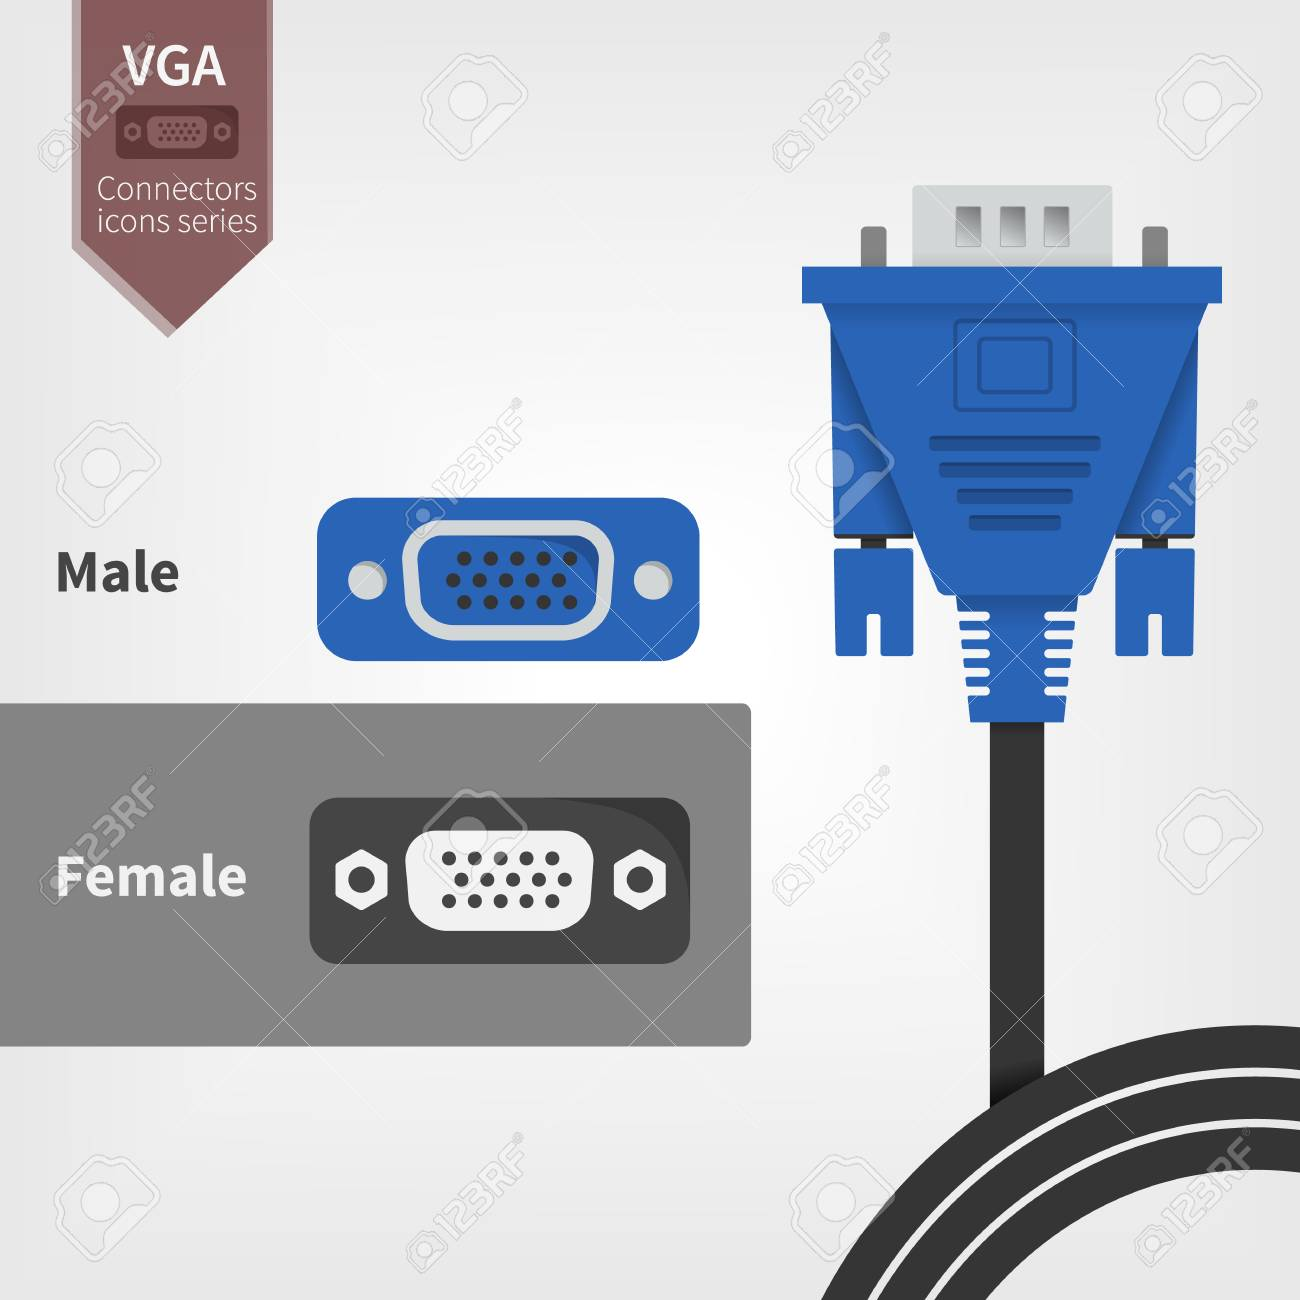 And Socket Connectors Flat 3 Way Plug Three Polarized Connector 2 Wire By Seadog Marine Products Vga Outlets Royalty Free Cliparts Vectors